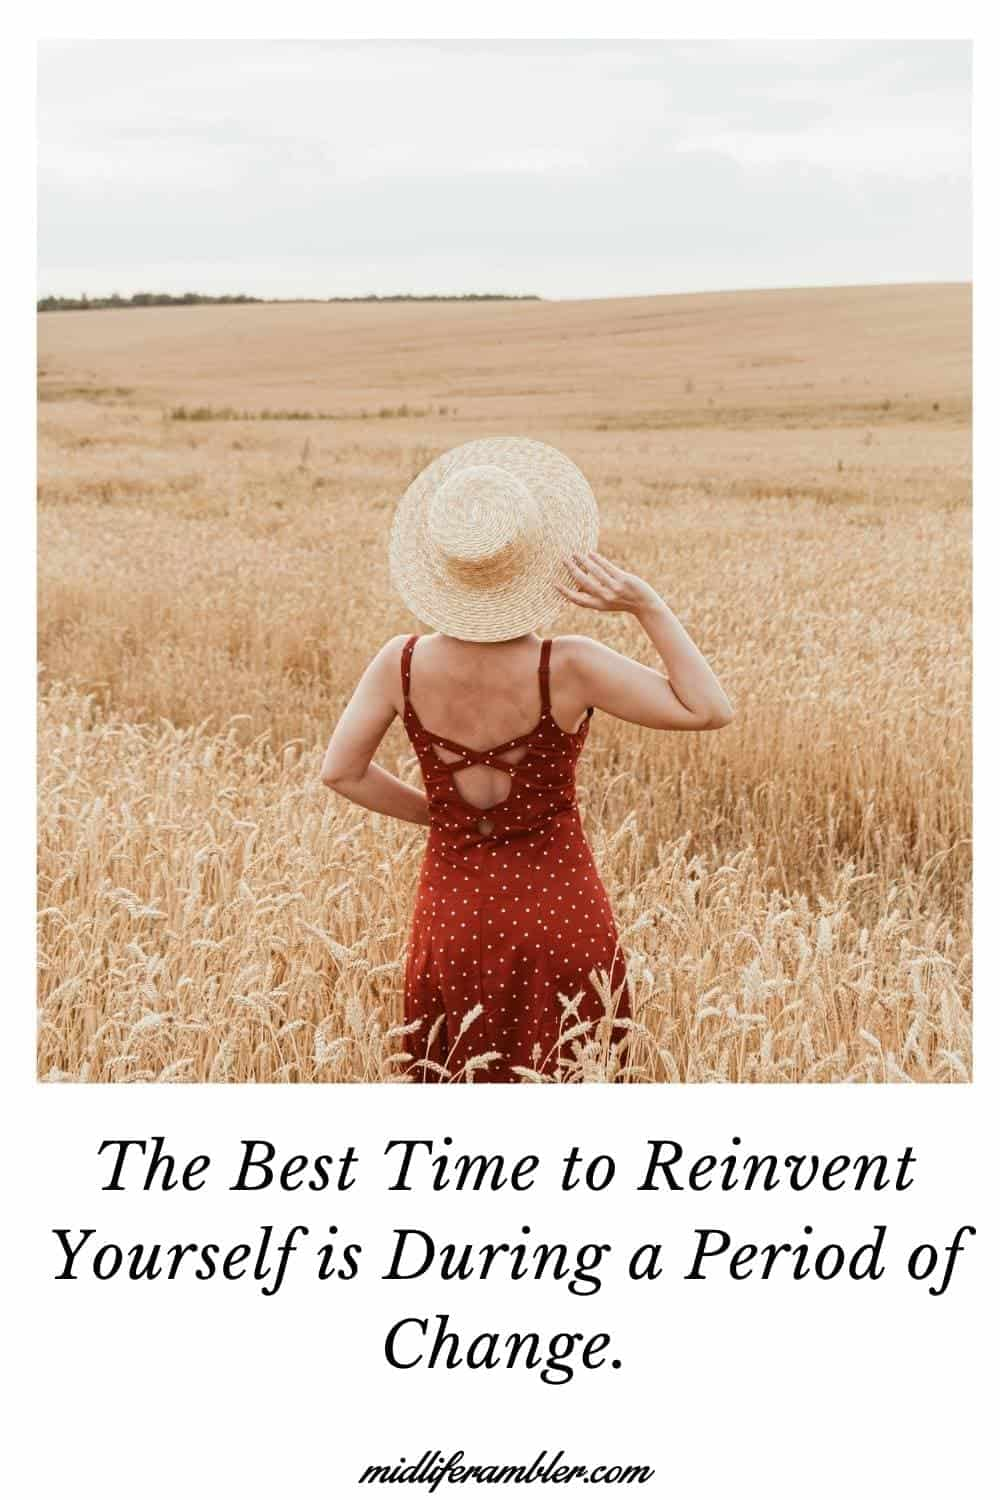 Photo representing the best time to reinvent your life is during a period of change.